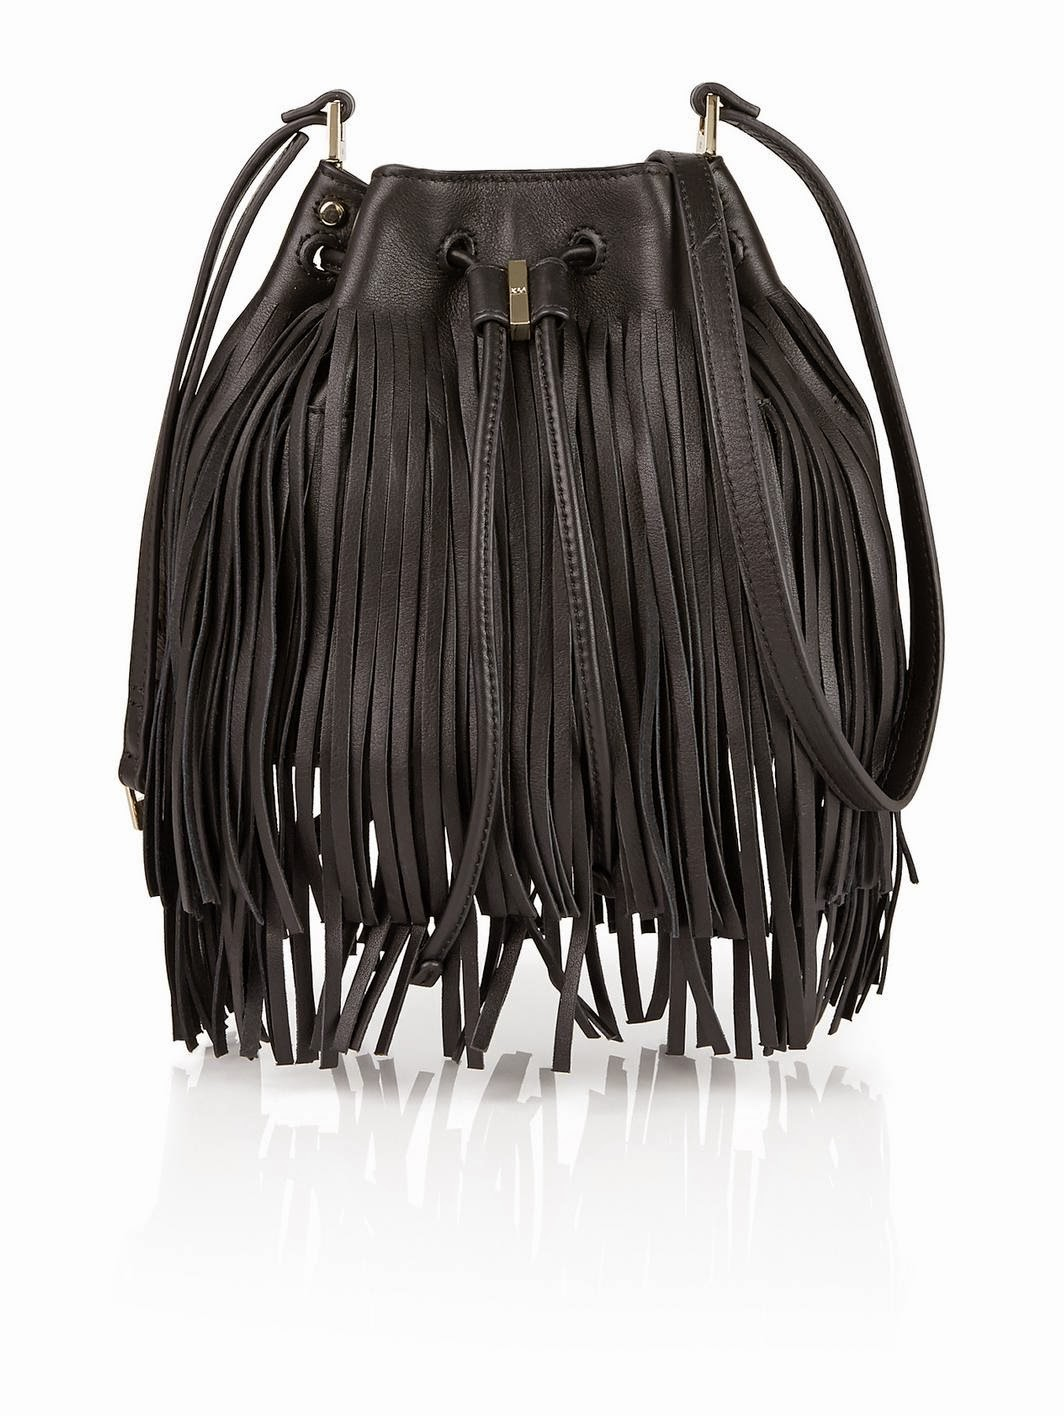 http://www.veryexclusive.co.uk/karen-millen-the-melrose-mini-fringed-bucket-bag-black/1459853181.prd